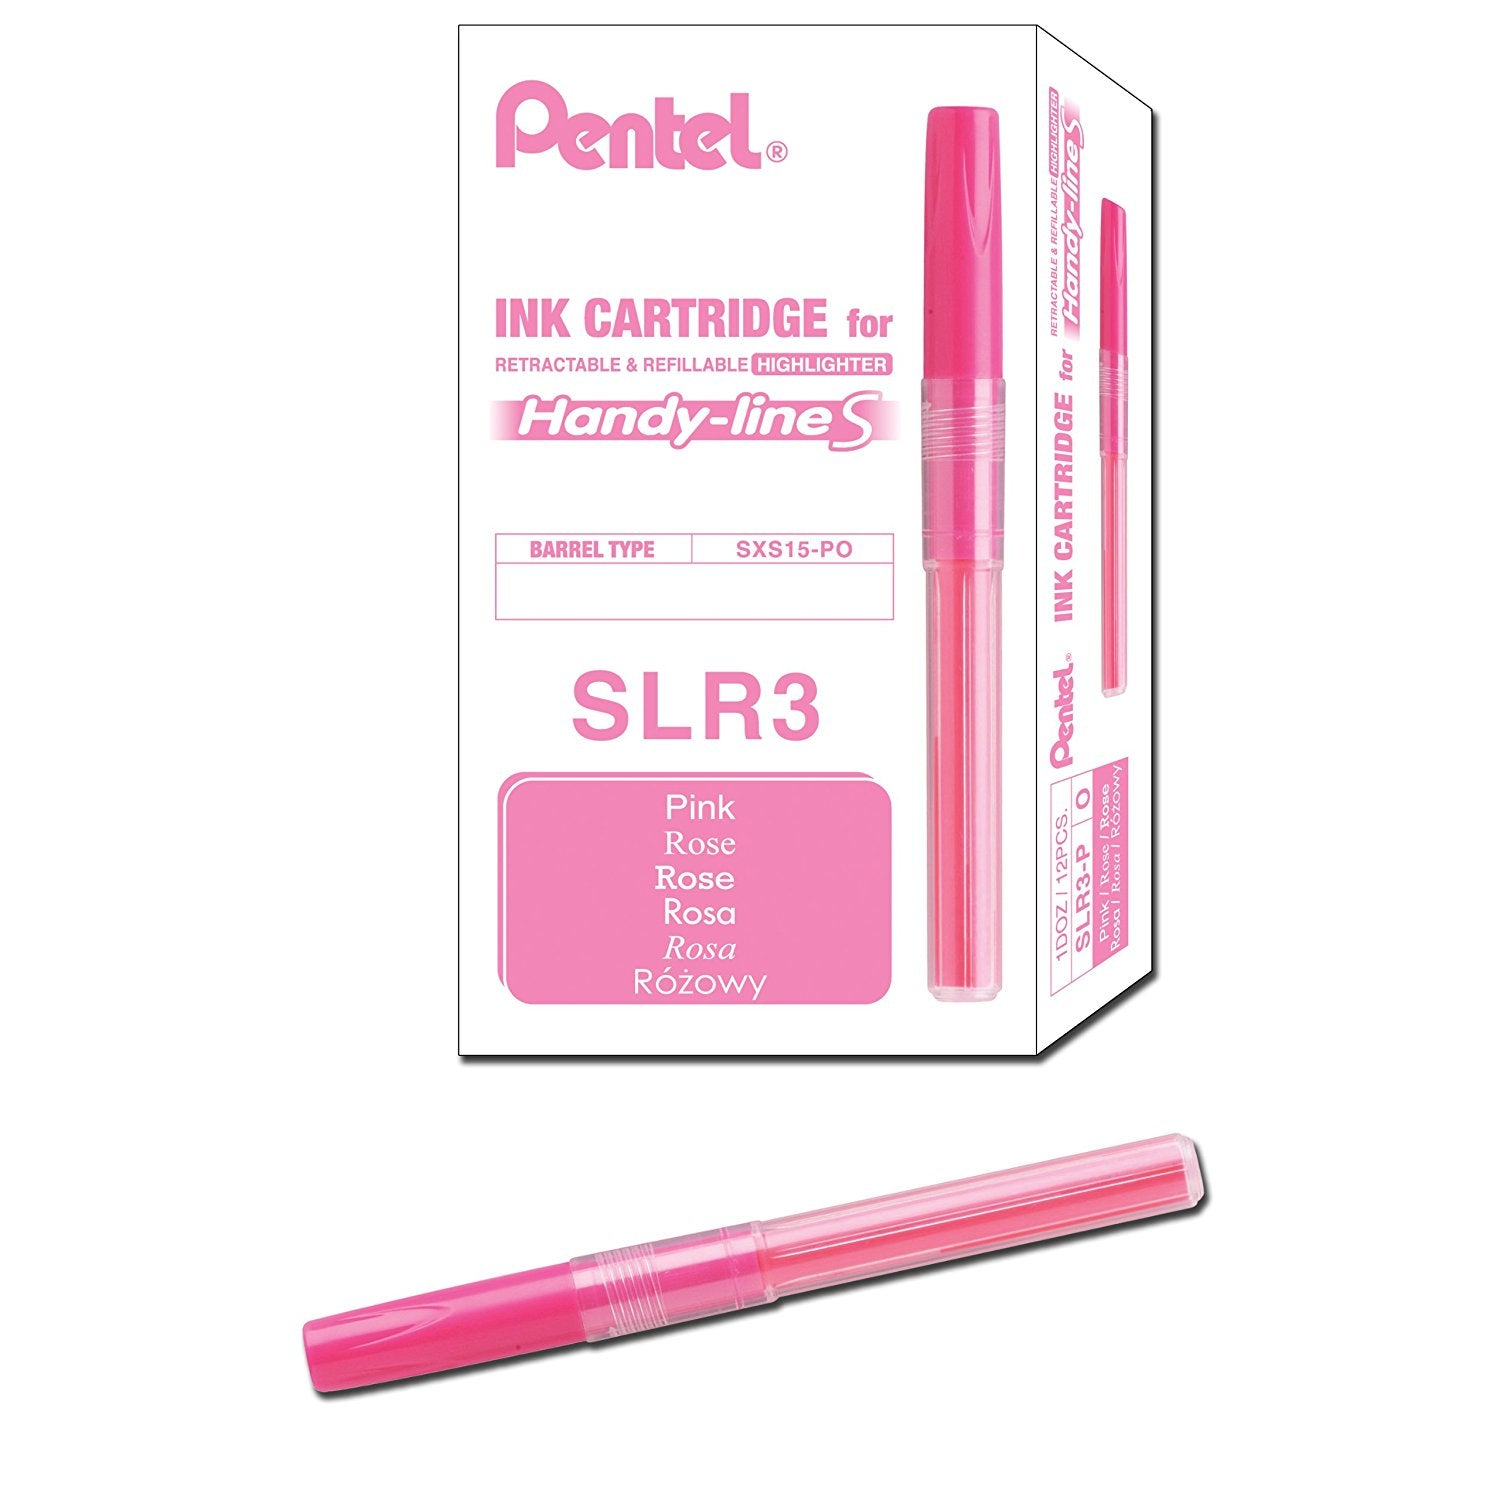 Pentel Handy-line S SLR3 Highlighter Refills (12pcs) - Pink